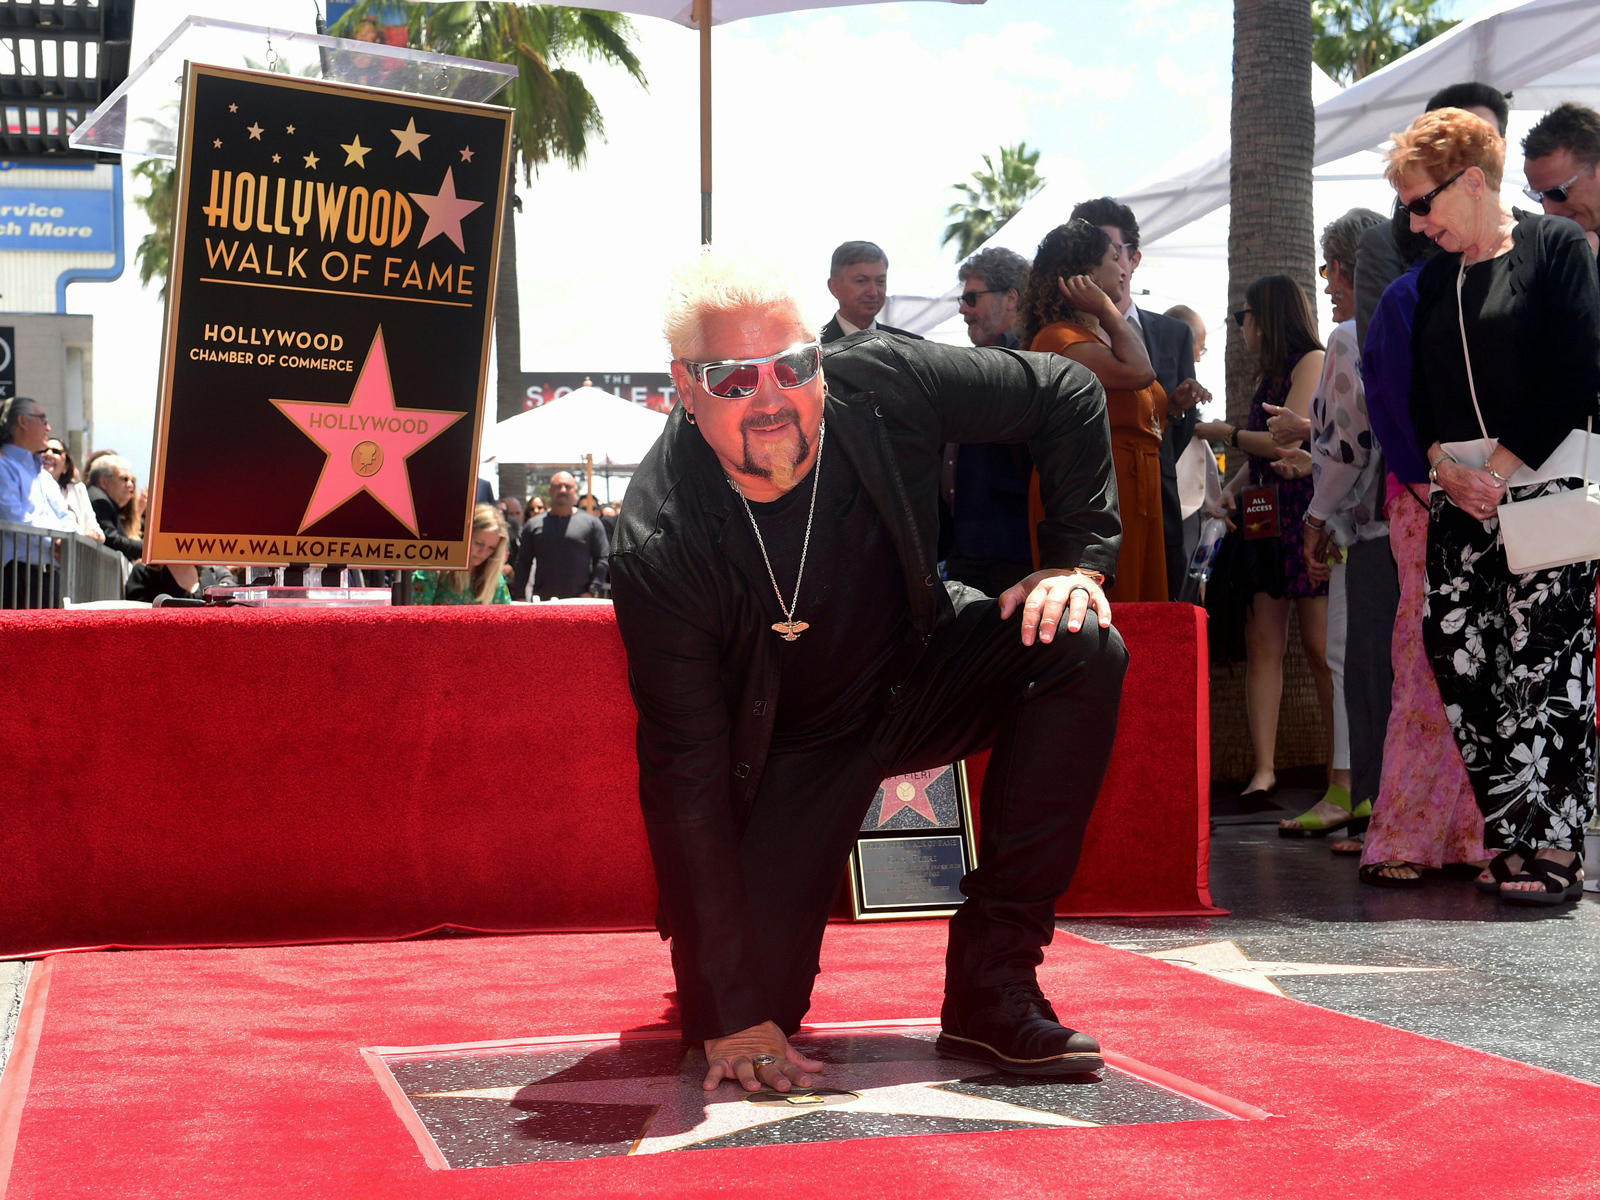 guy-fieri-walk-of-fame-FT-BLOG0519.jpg